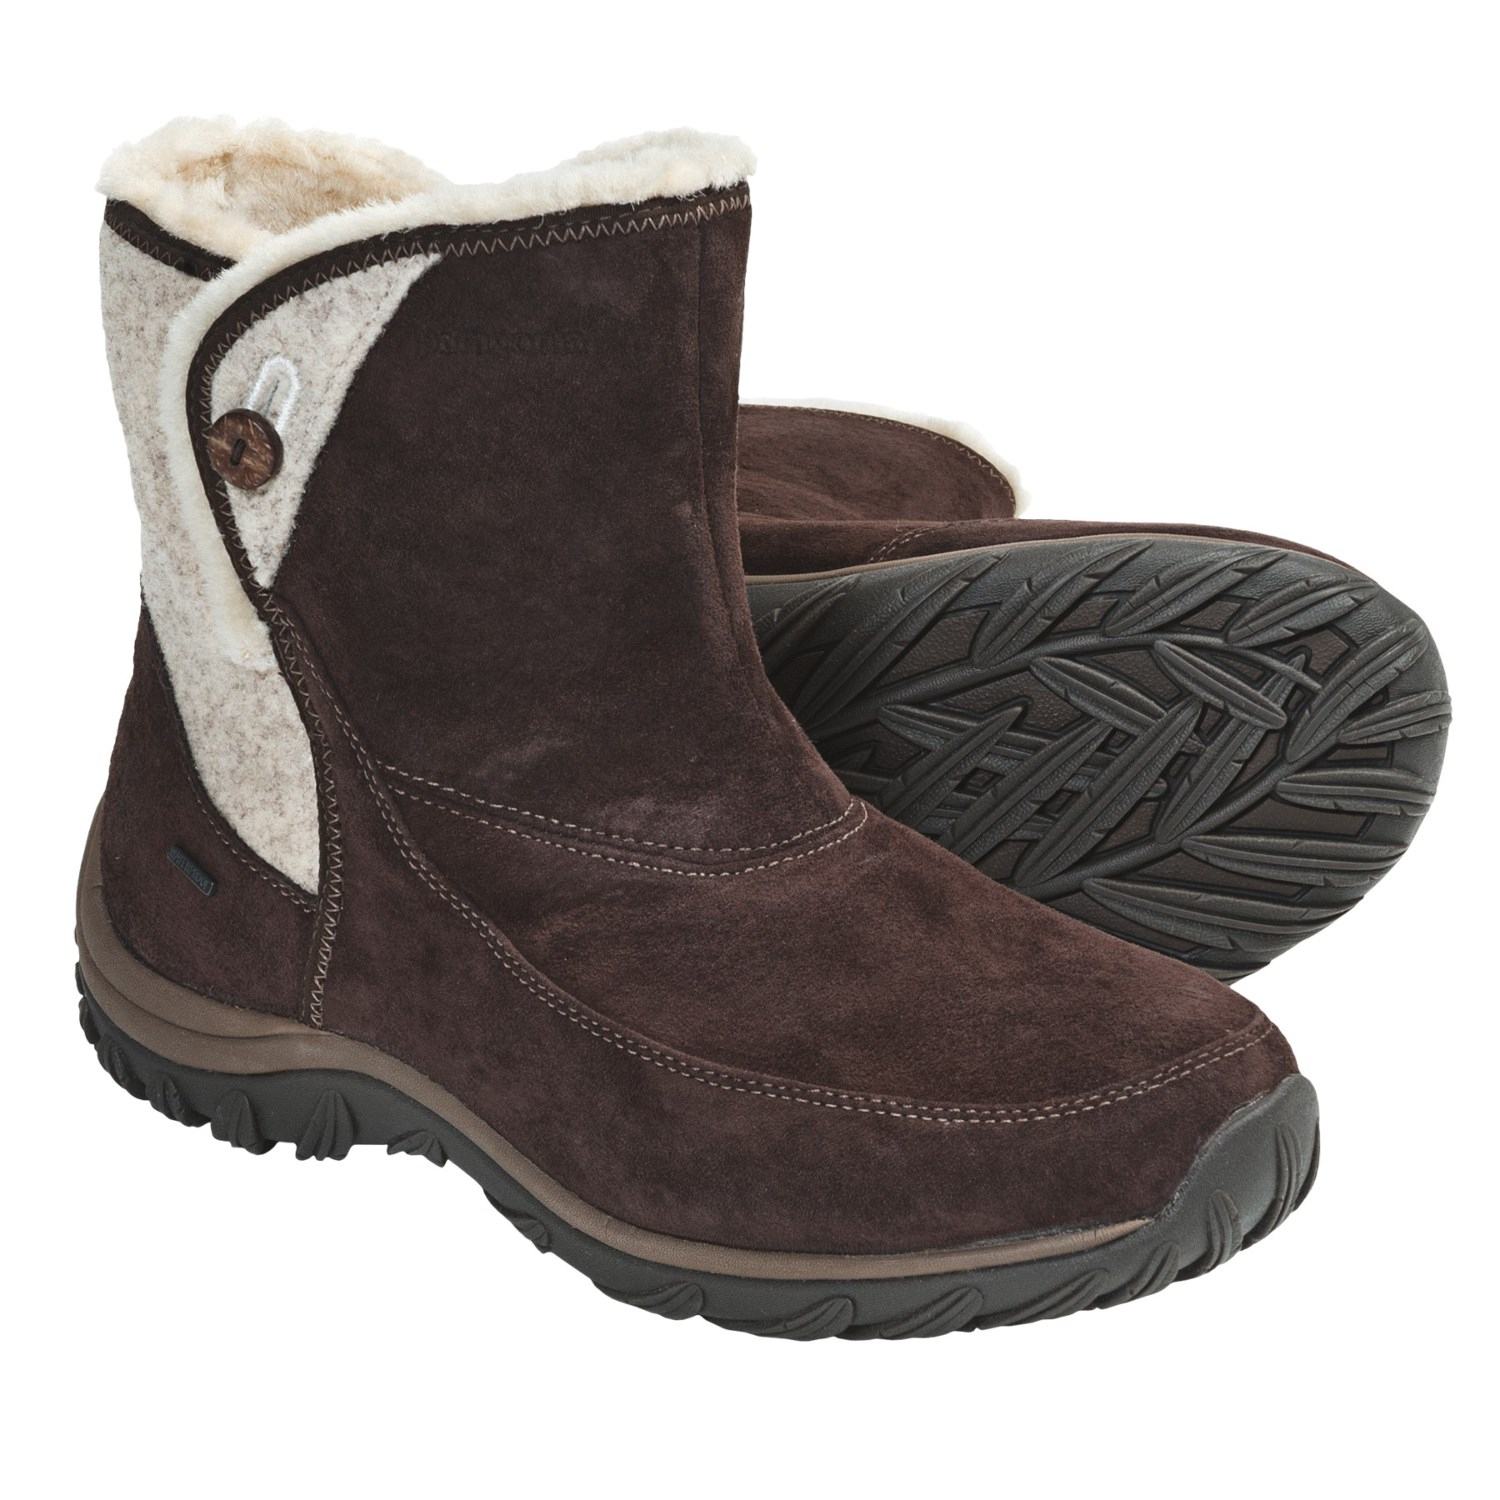 Patagonia Attlee Snap Winter Boots - Waterproof, Recycled